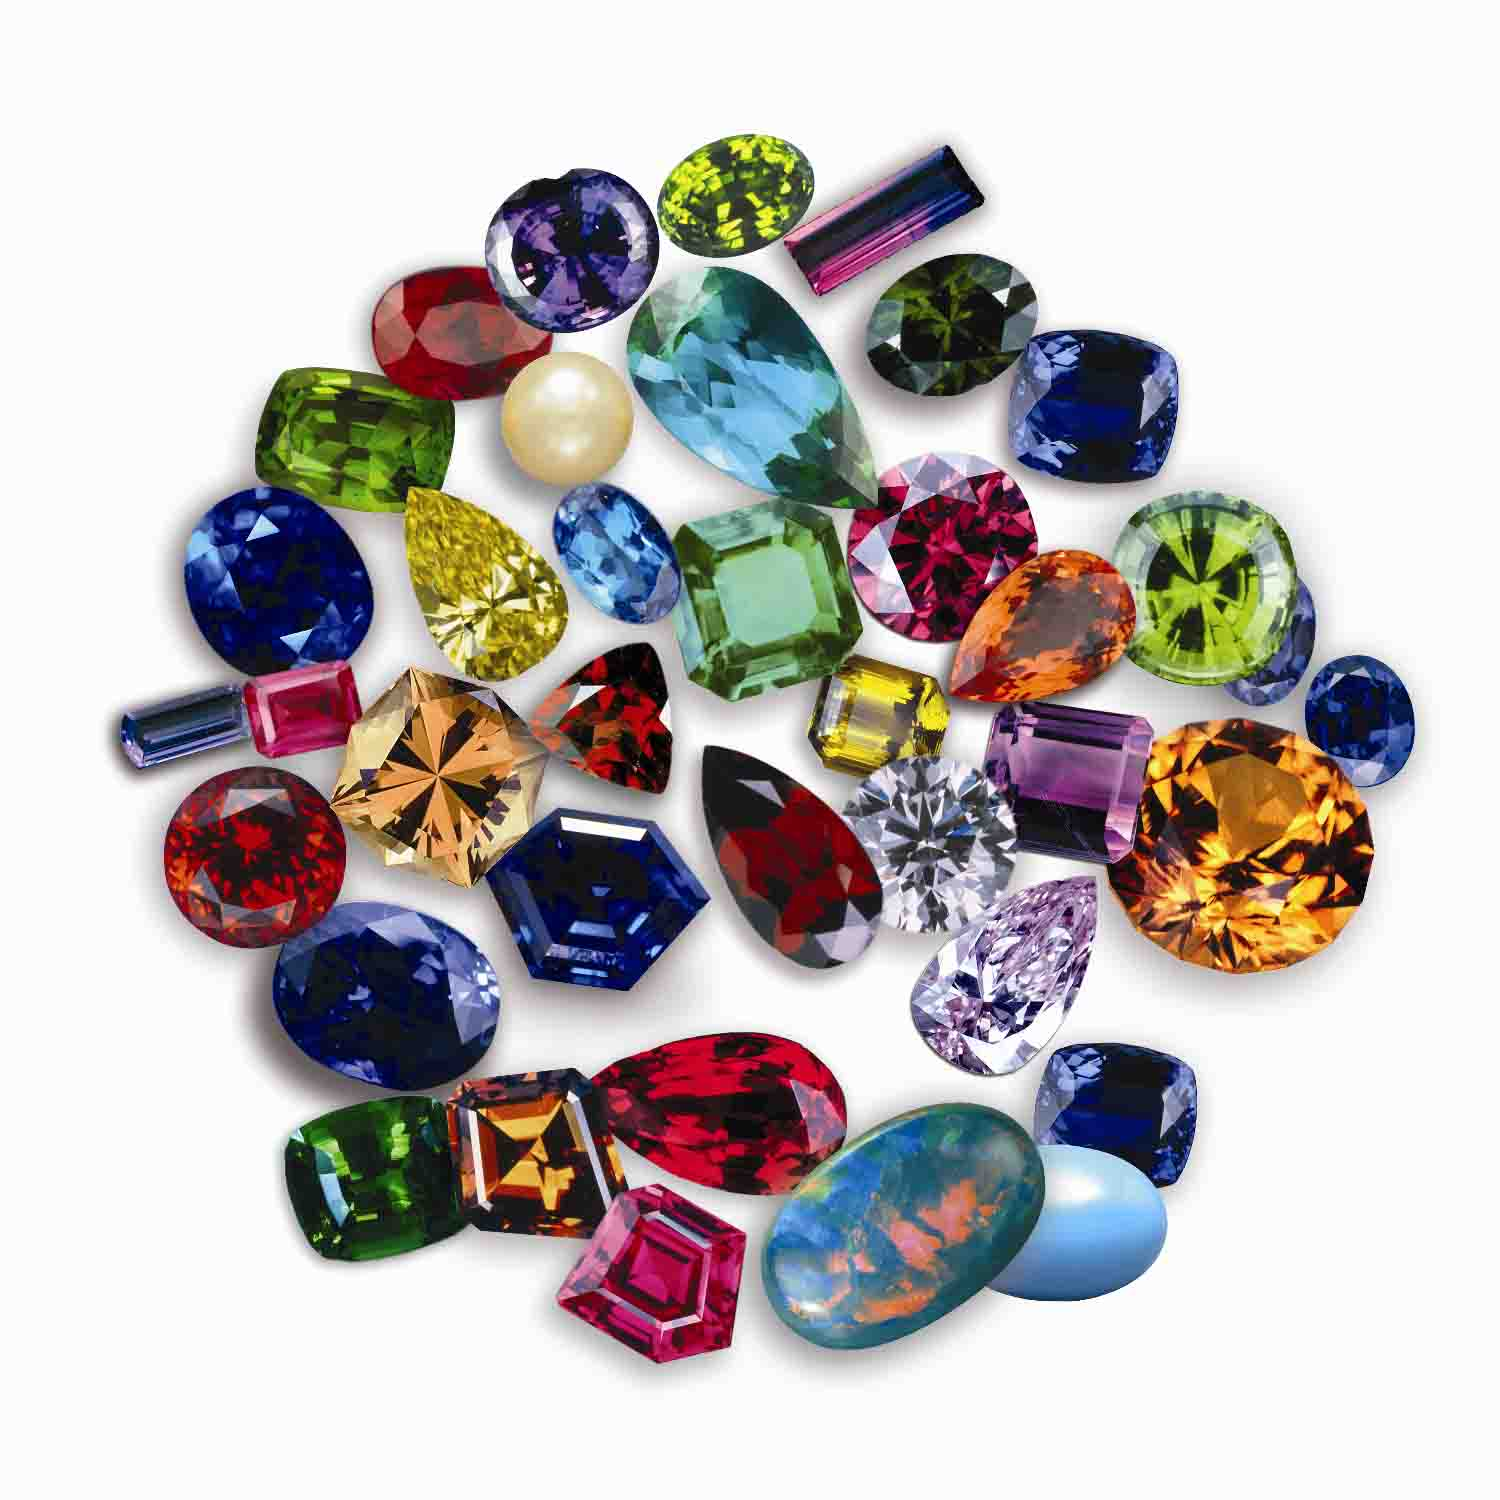 Gemstone Mining Methods Jewelinfo4u